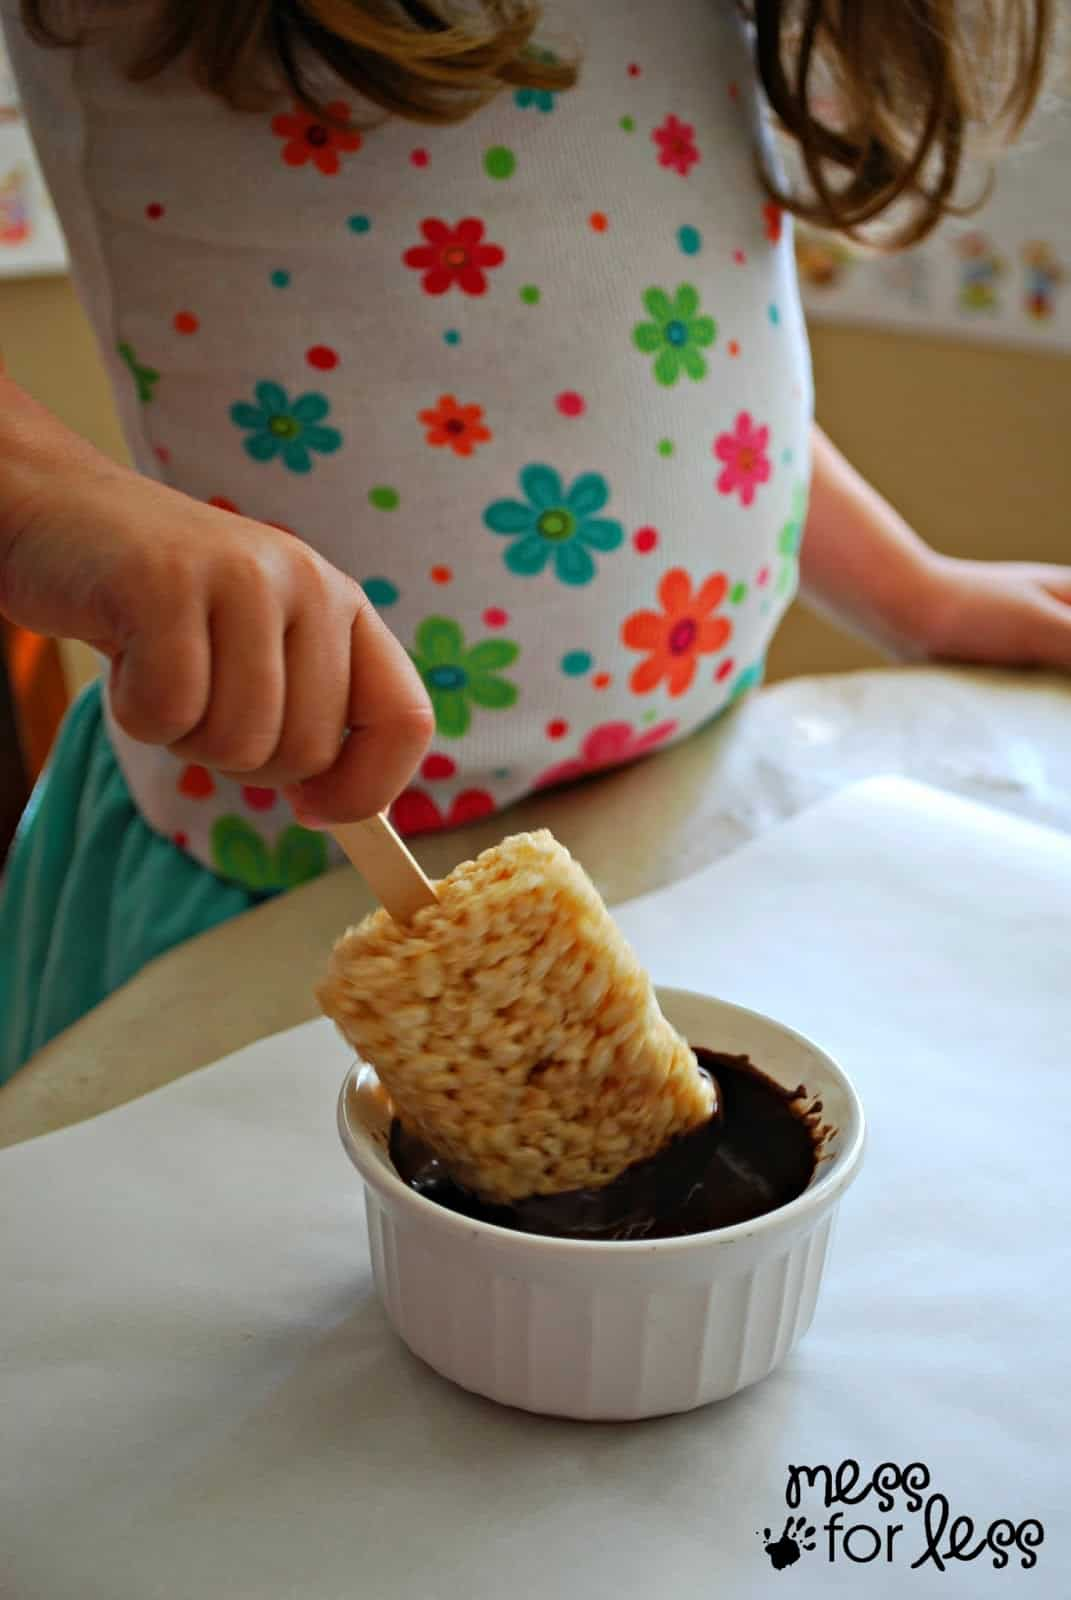 Home handmade candies chocolate dipped rice krispy treats 2 - Chocolate Dipped Rice Krispies Treats Ad Easytomake